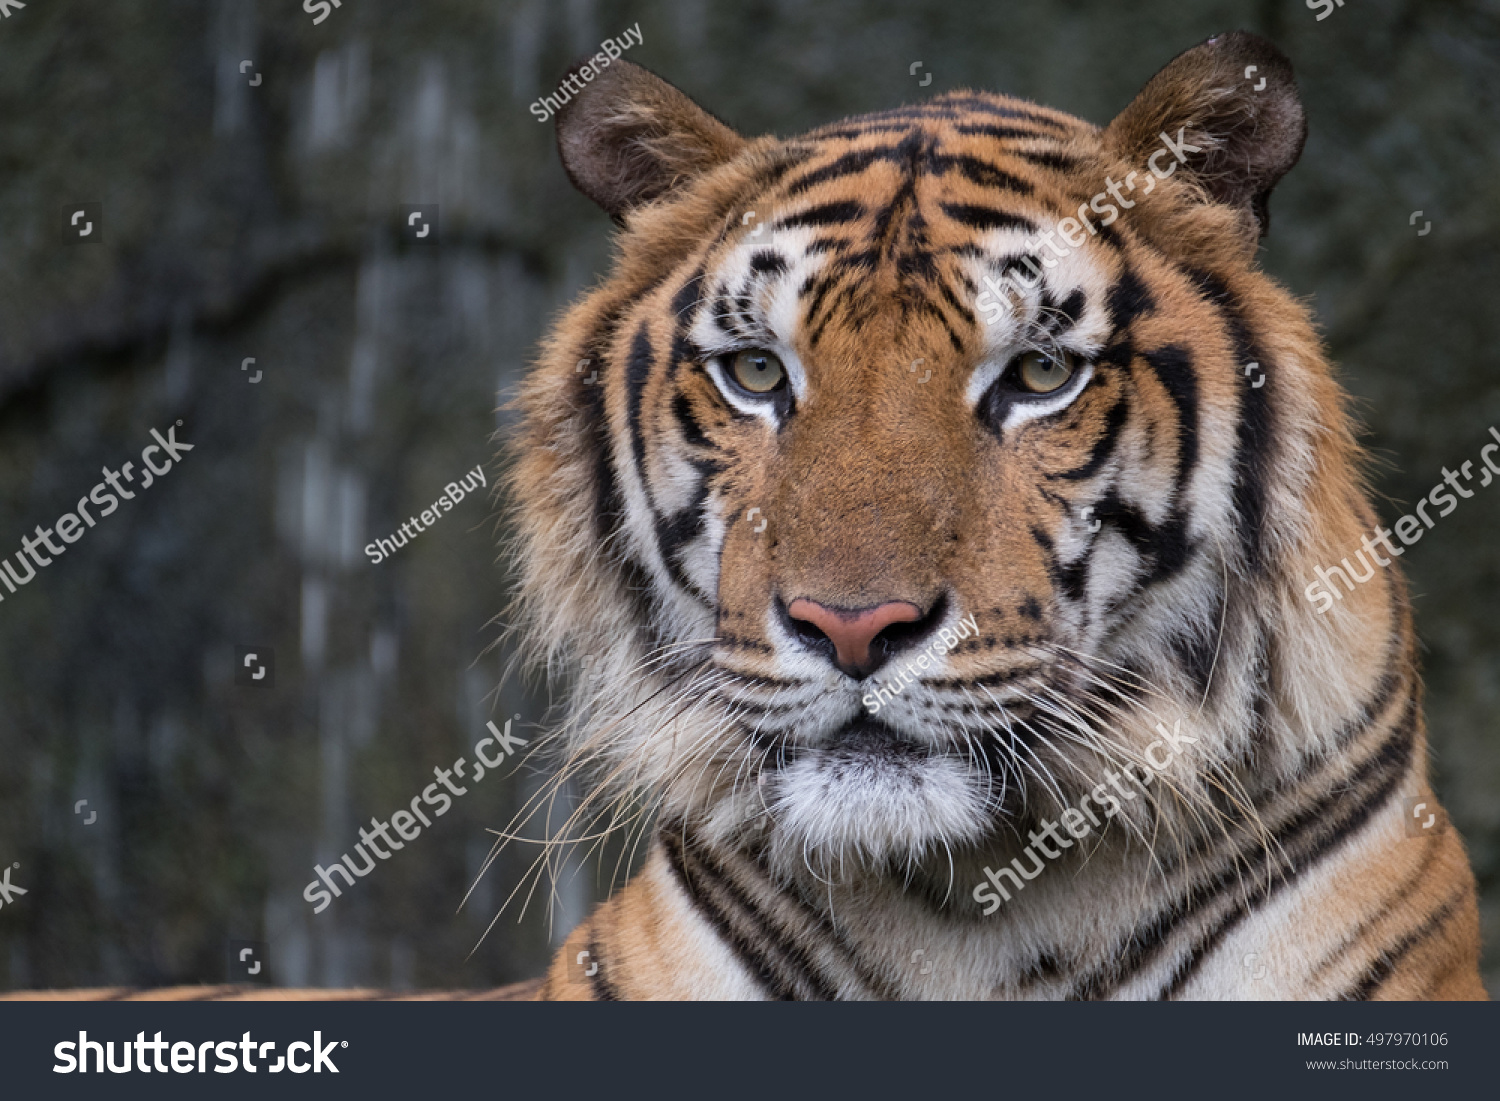 Bengal tiger head - Show me a picture of the tiger ...